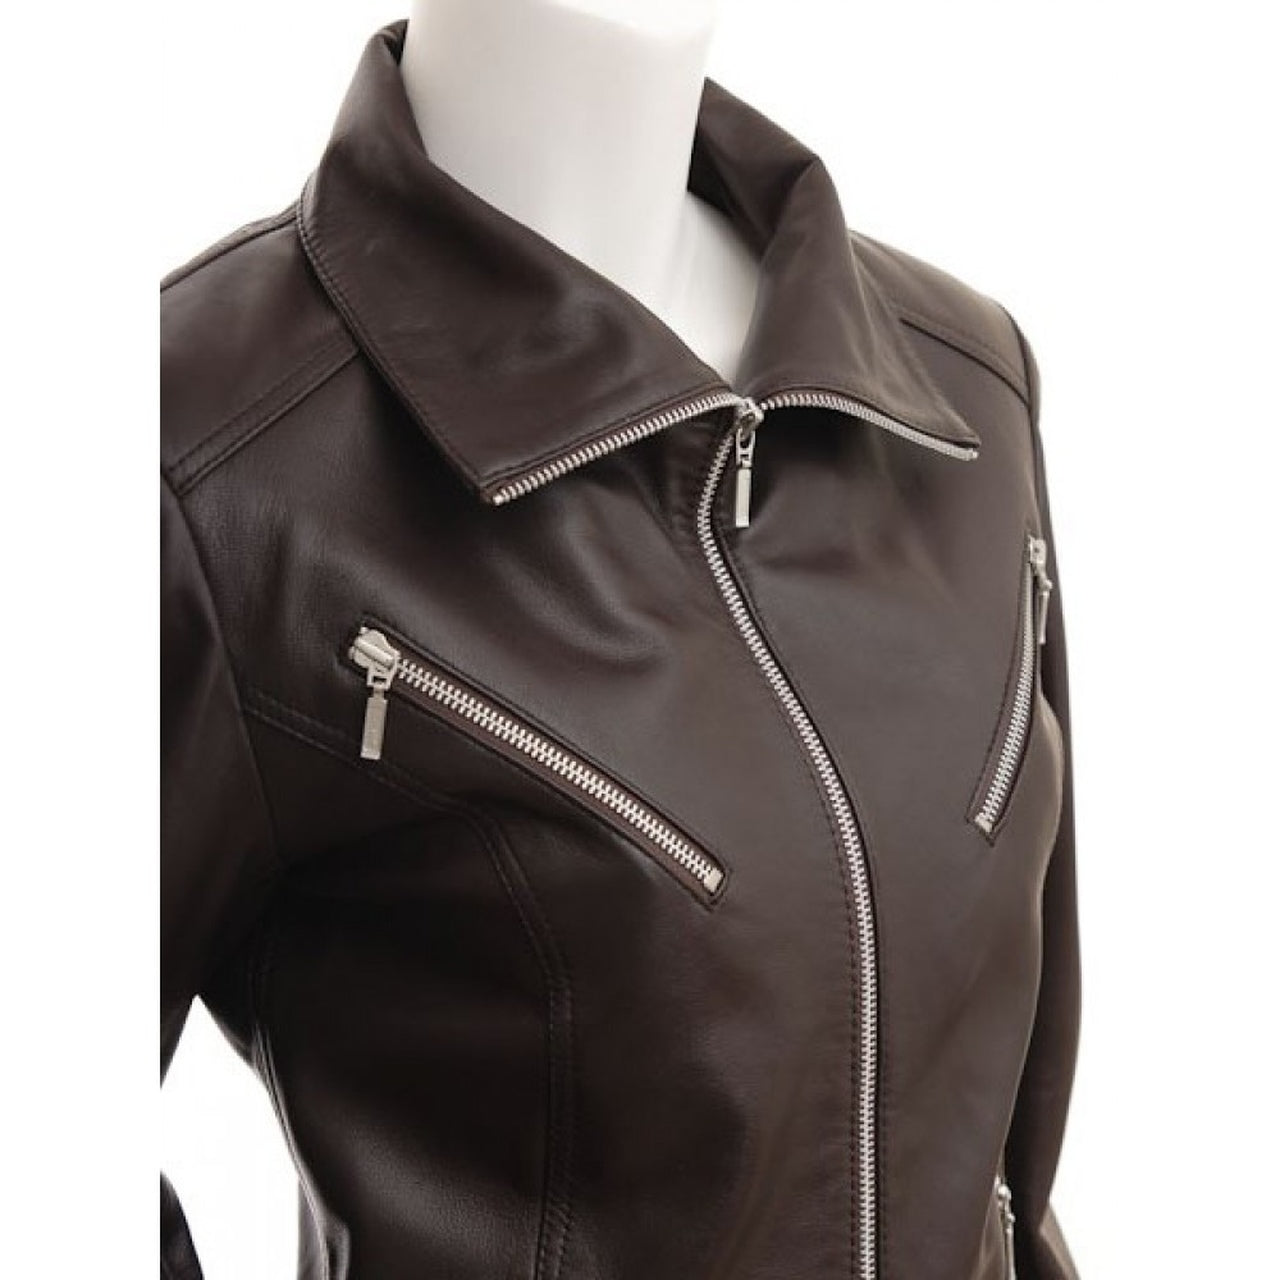 Brown High Collar Stylish Leather Jacket for Women - Leather Jacket